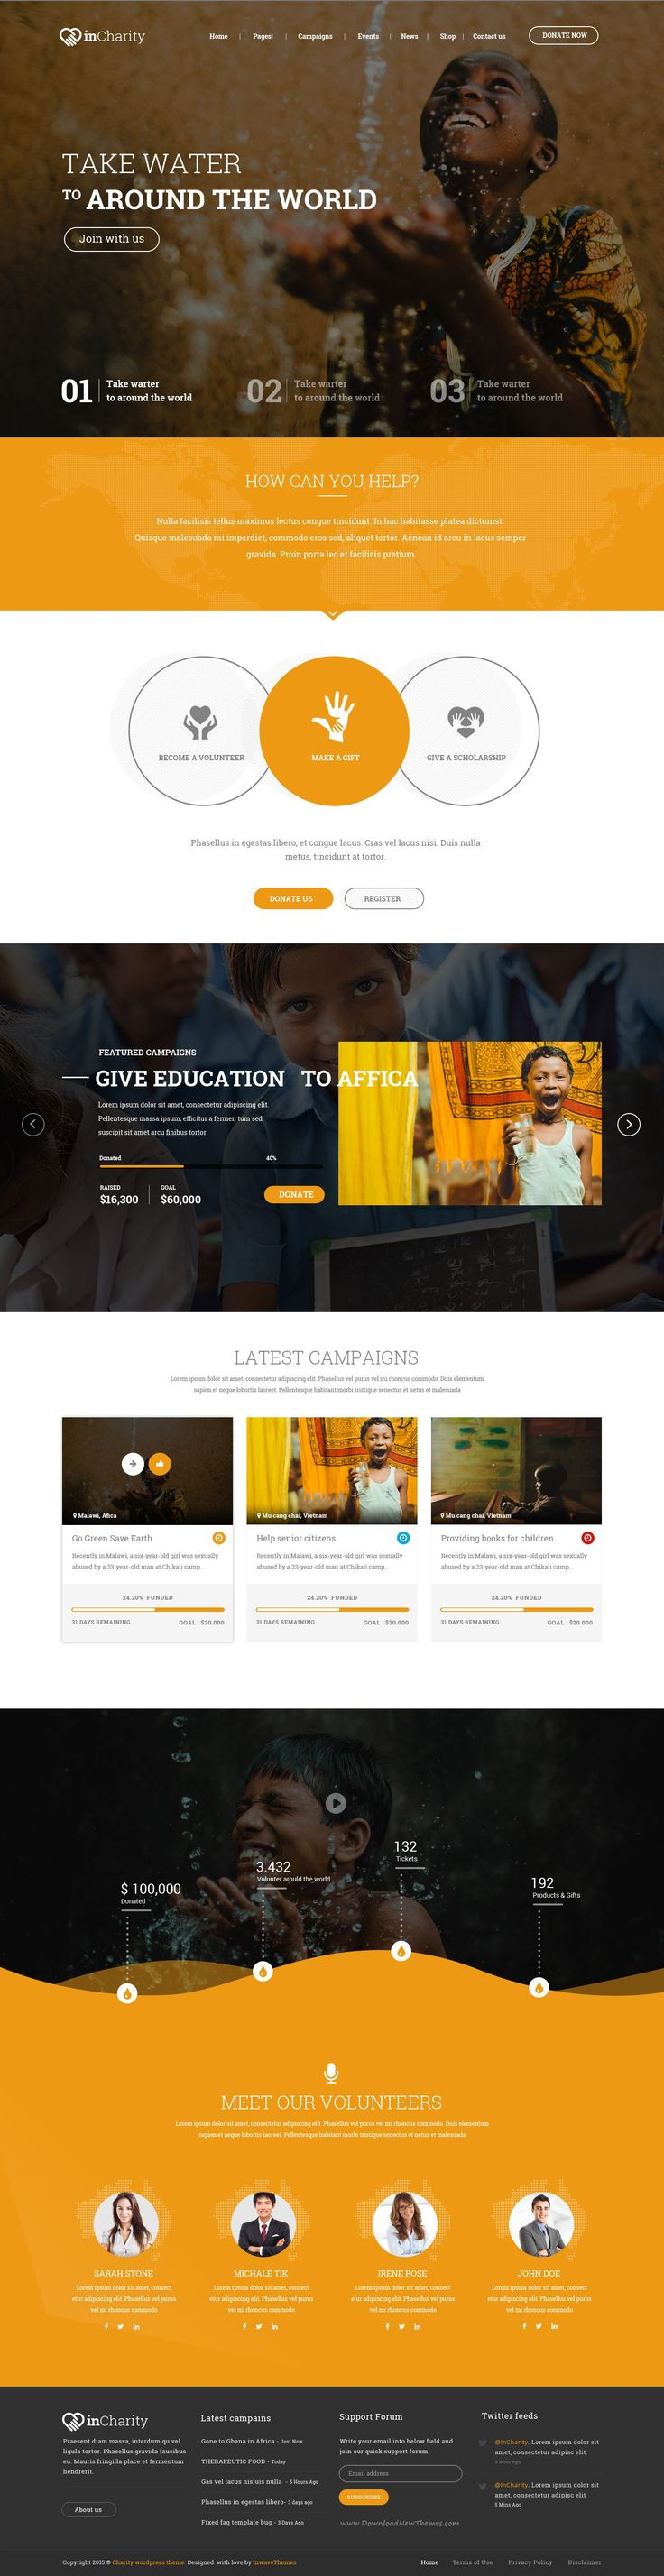 InCharity Might Be One Of The Best PSD Template At Themeforest For Charity,  Fundraising And. Website LayoutLayout SiteOne Page ...